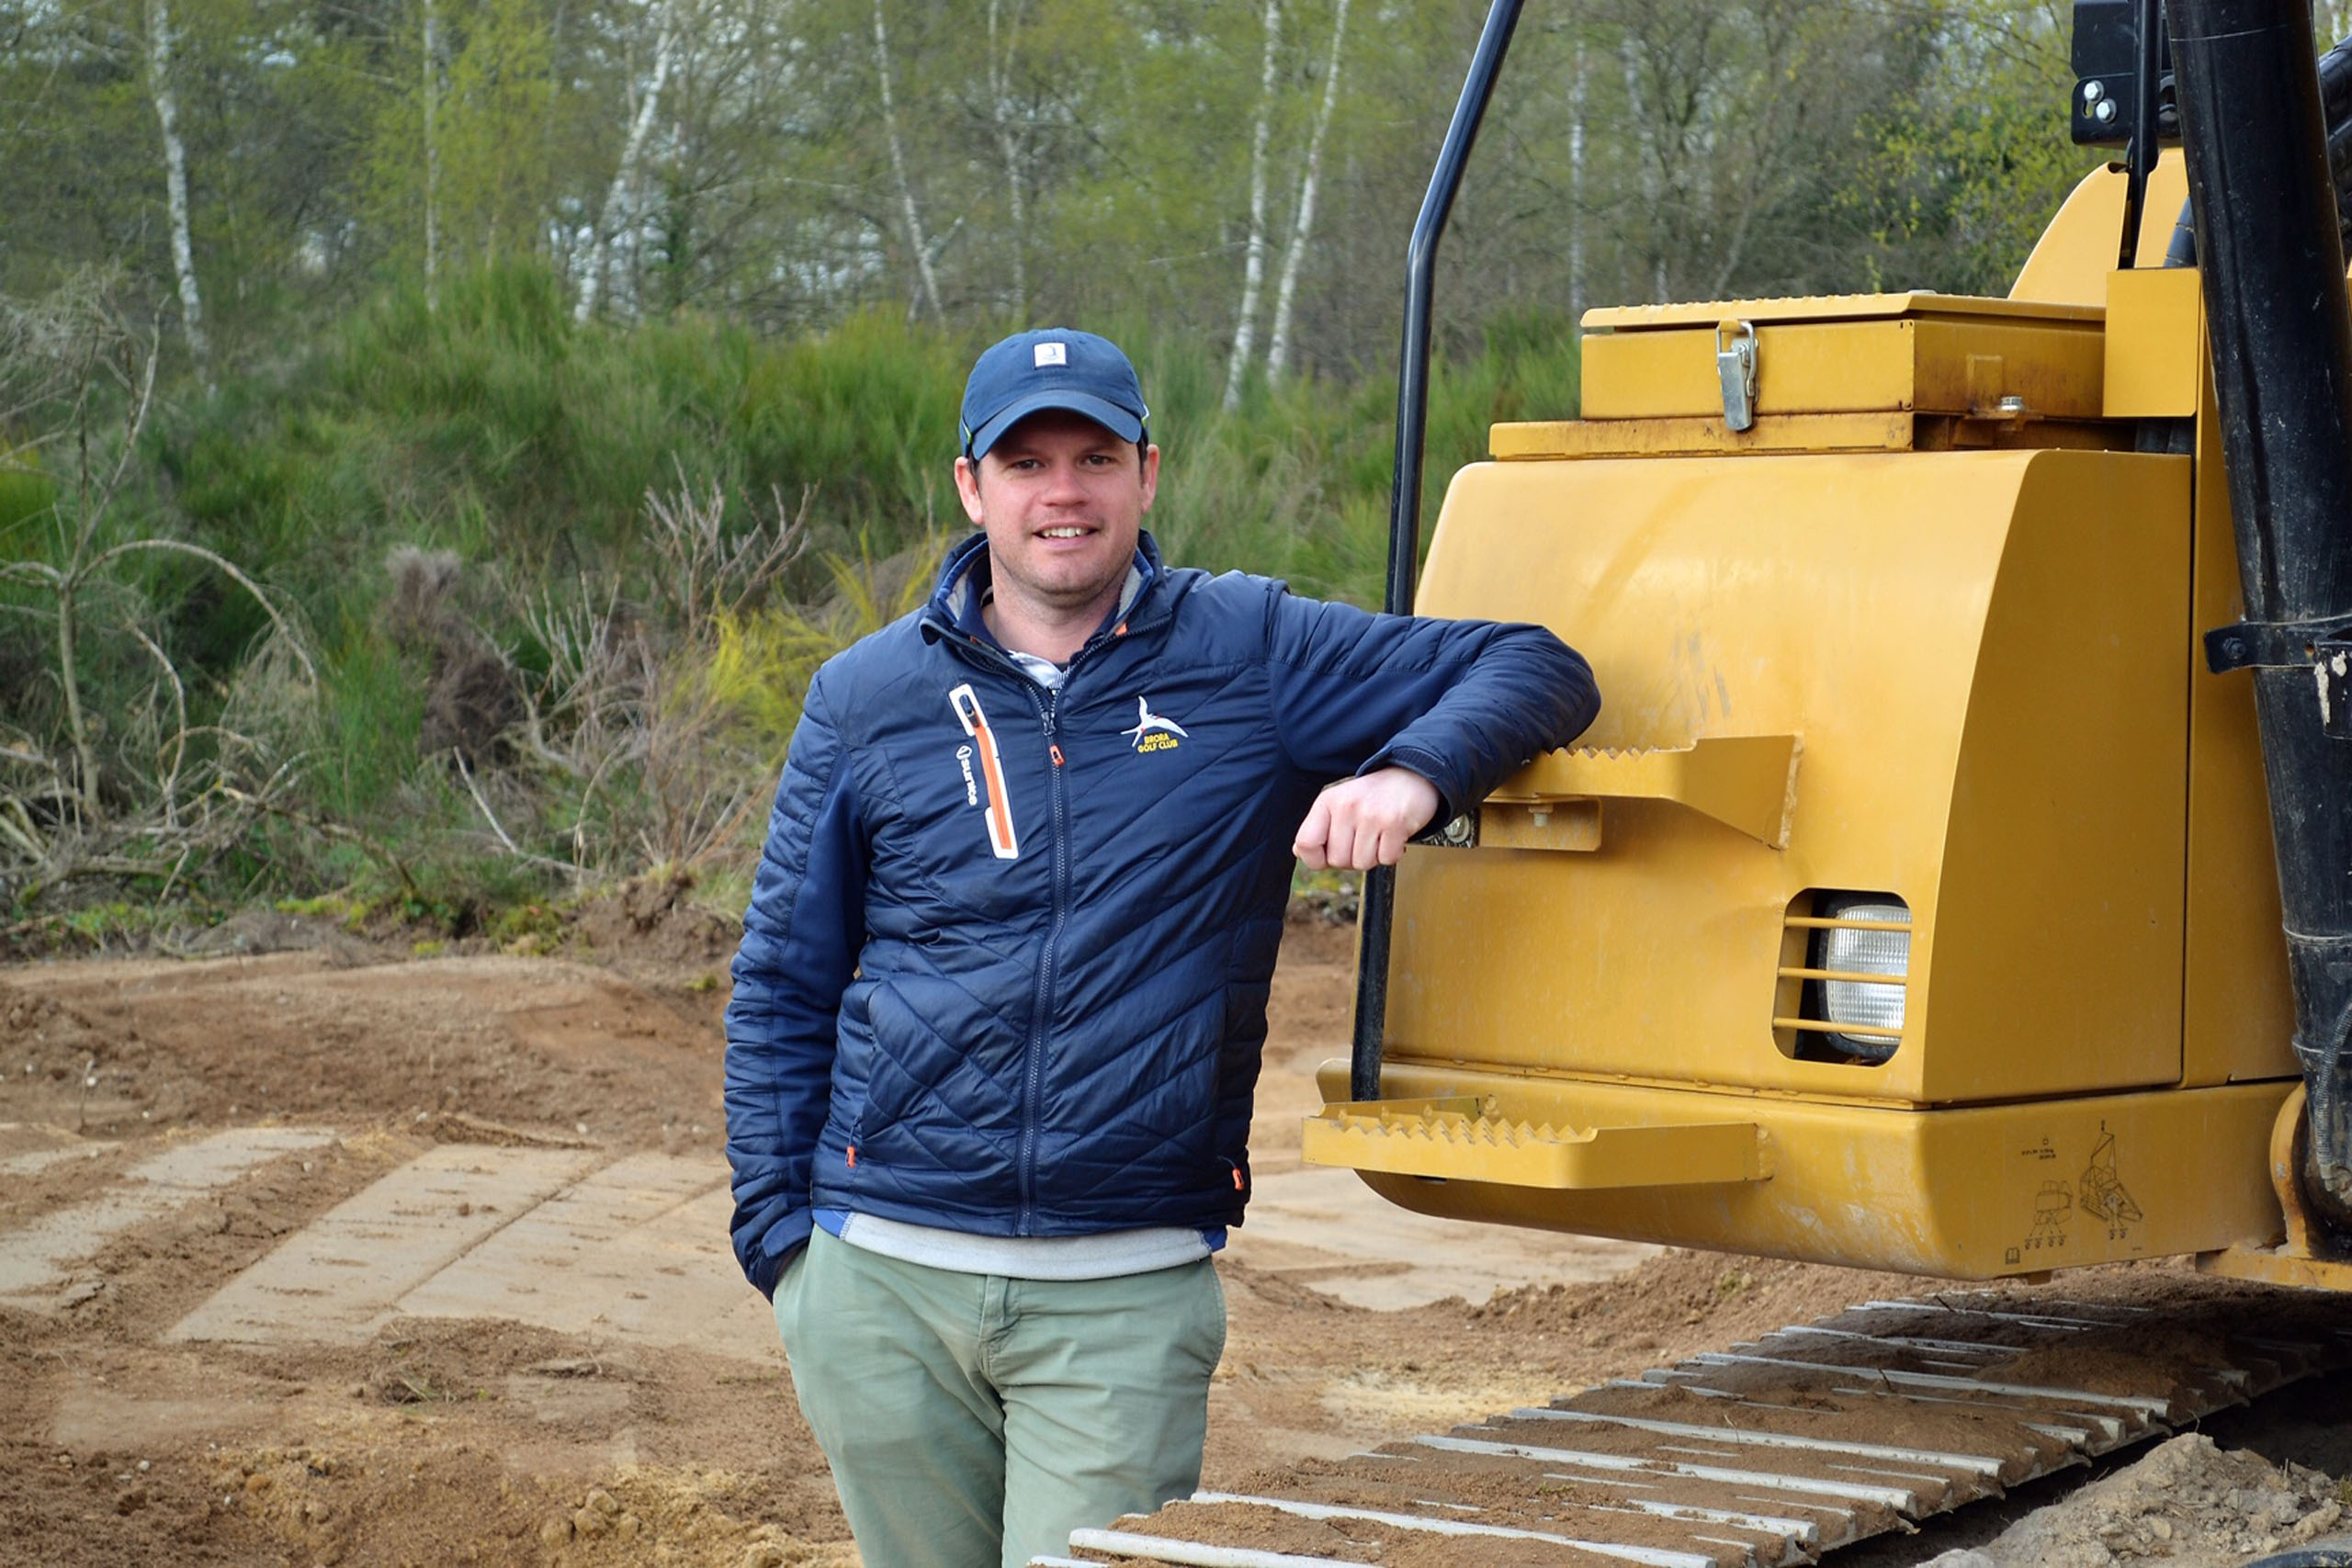 Neil Cameron, French golf course shaper